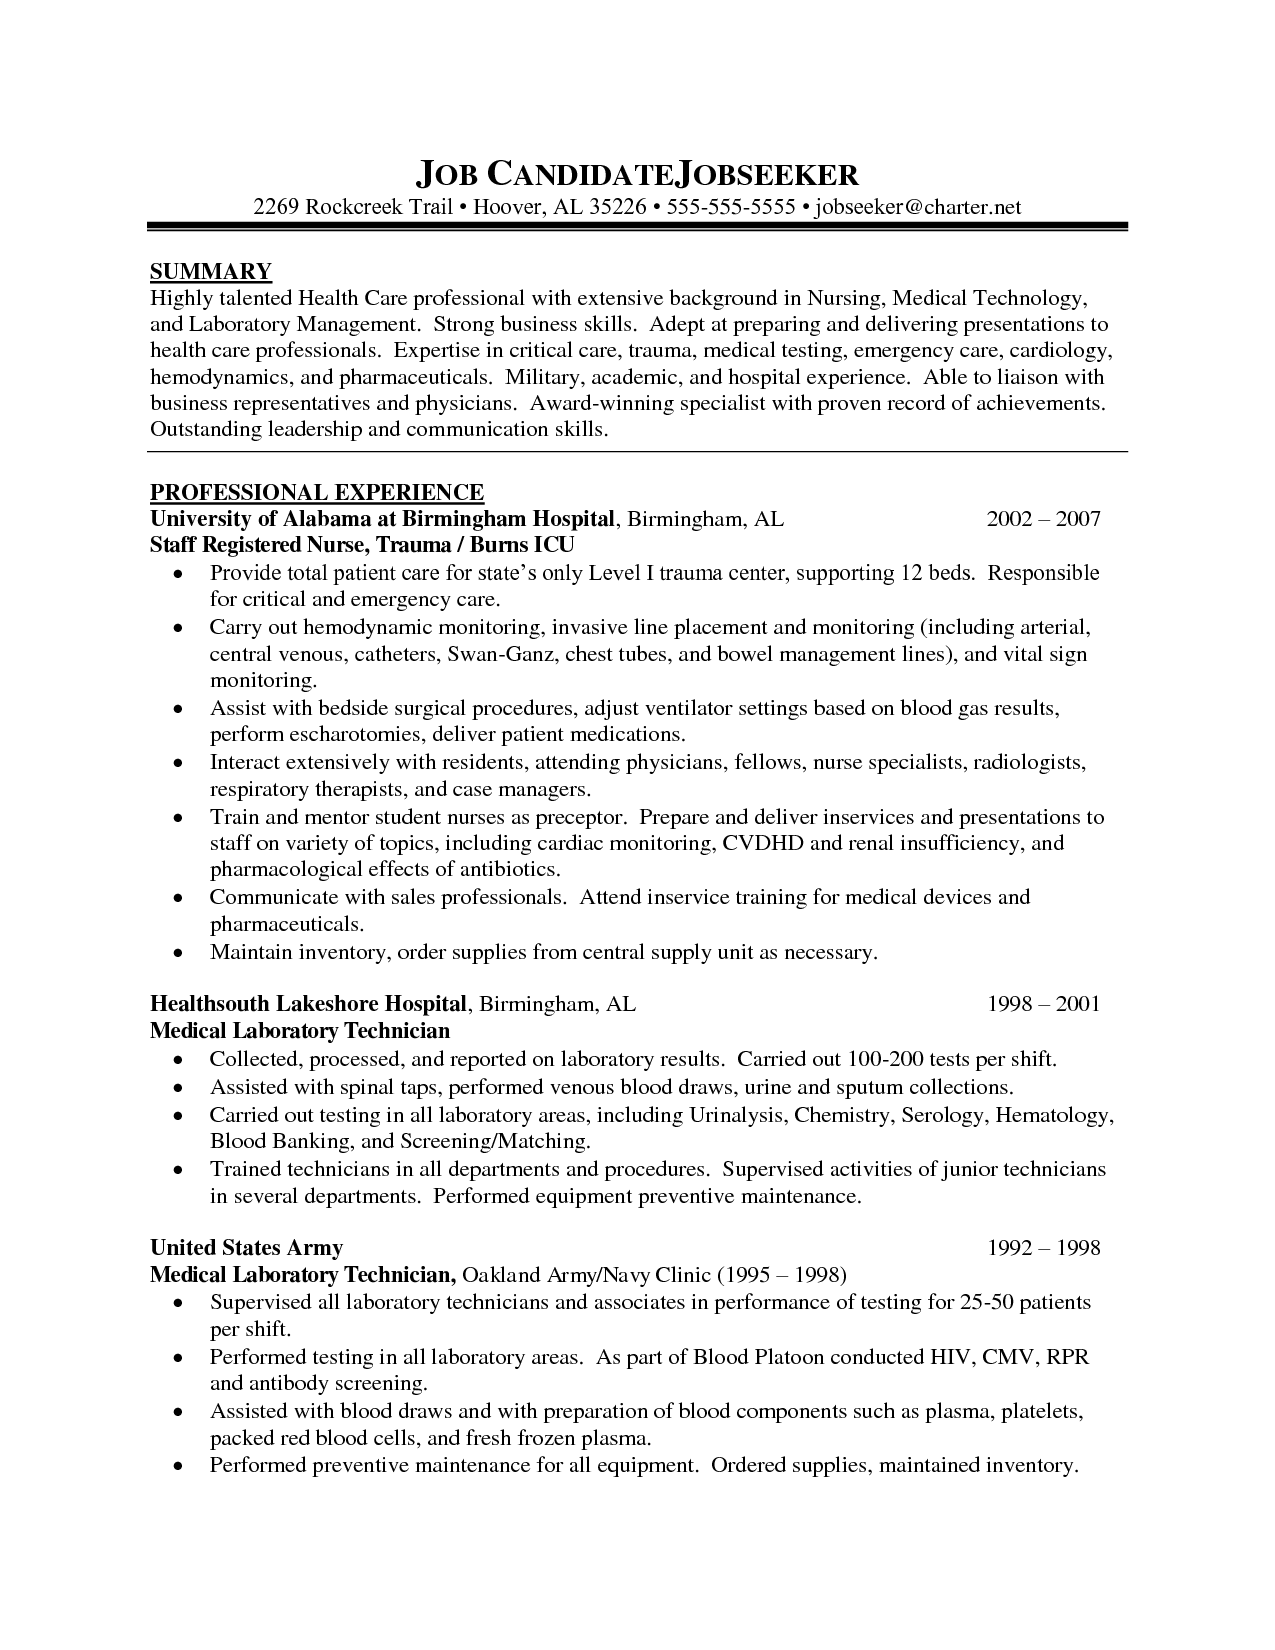 Resume Objective For Retail Oncology Nurse Resume Objective  Httpwwwresumecareer